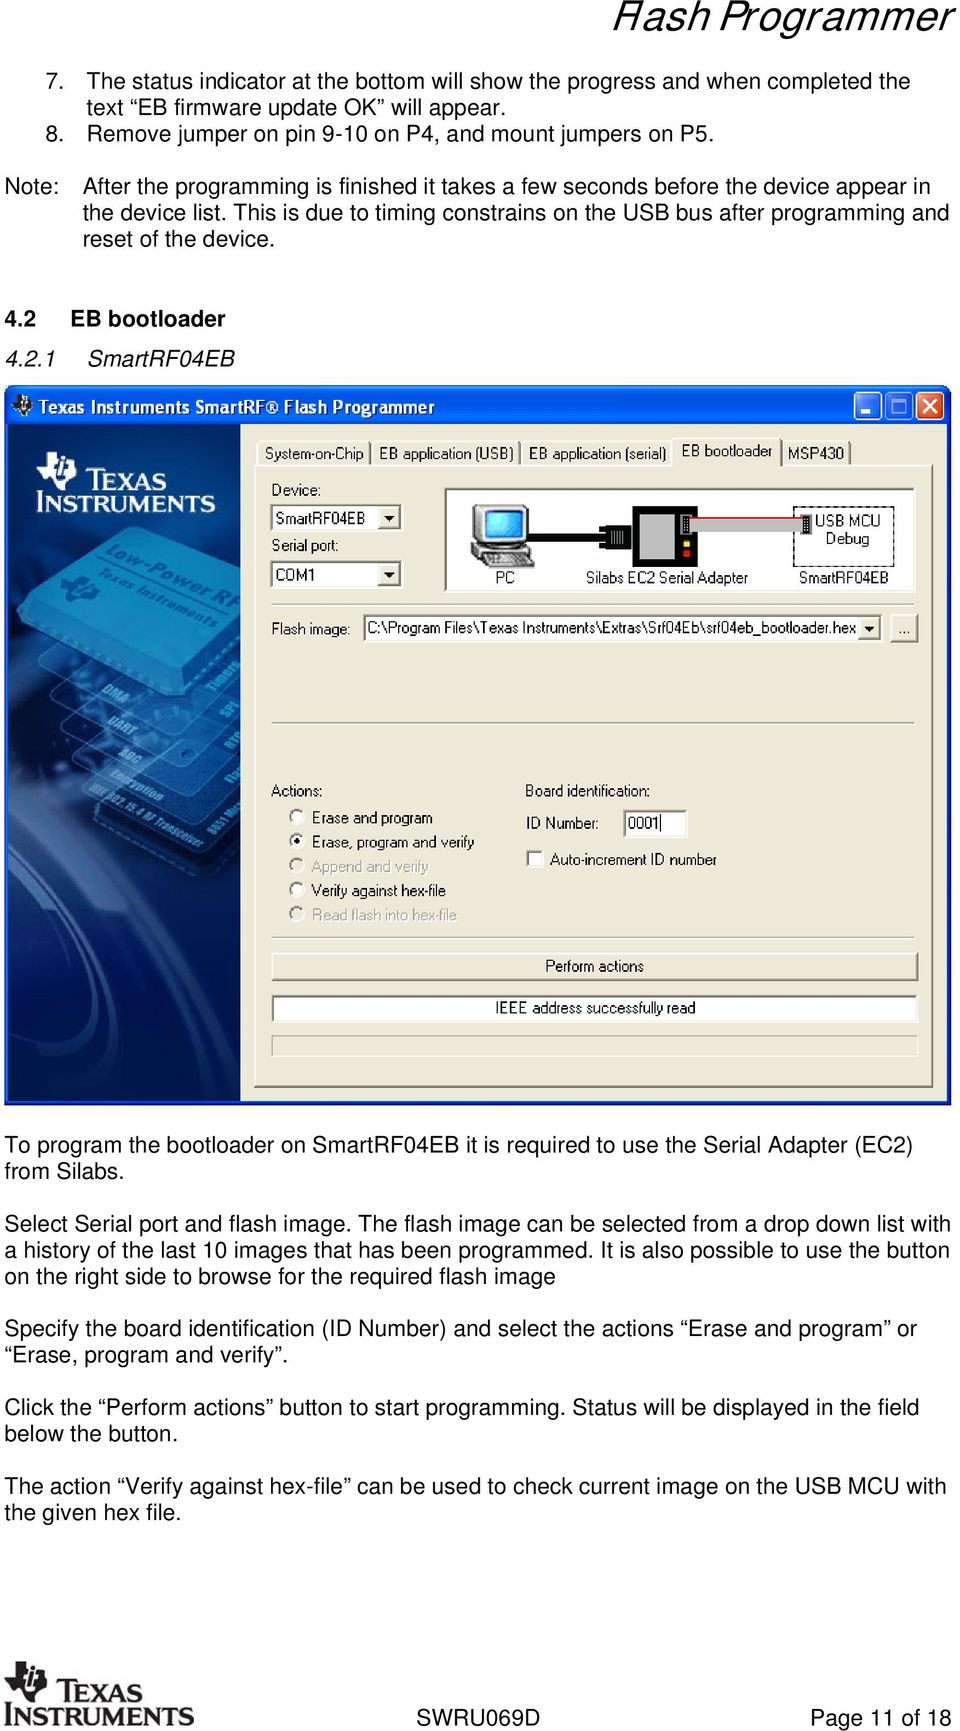 4.2 EB bootloader 4.2.1 SmartRF04EB To program the bootloader on SmartRF04EB it is required to use the Serial Adapter (EC2) from Silabs. Select Serial port and flash image.